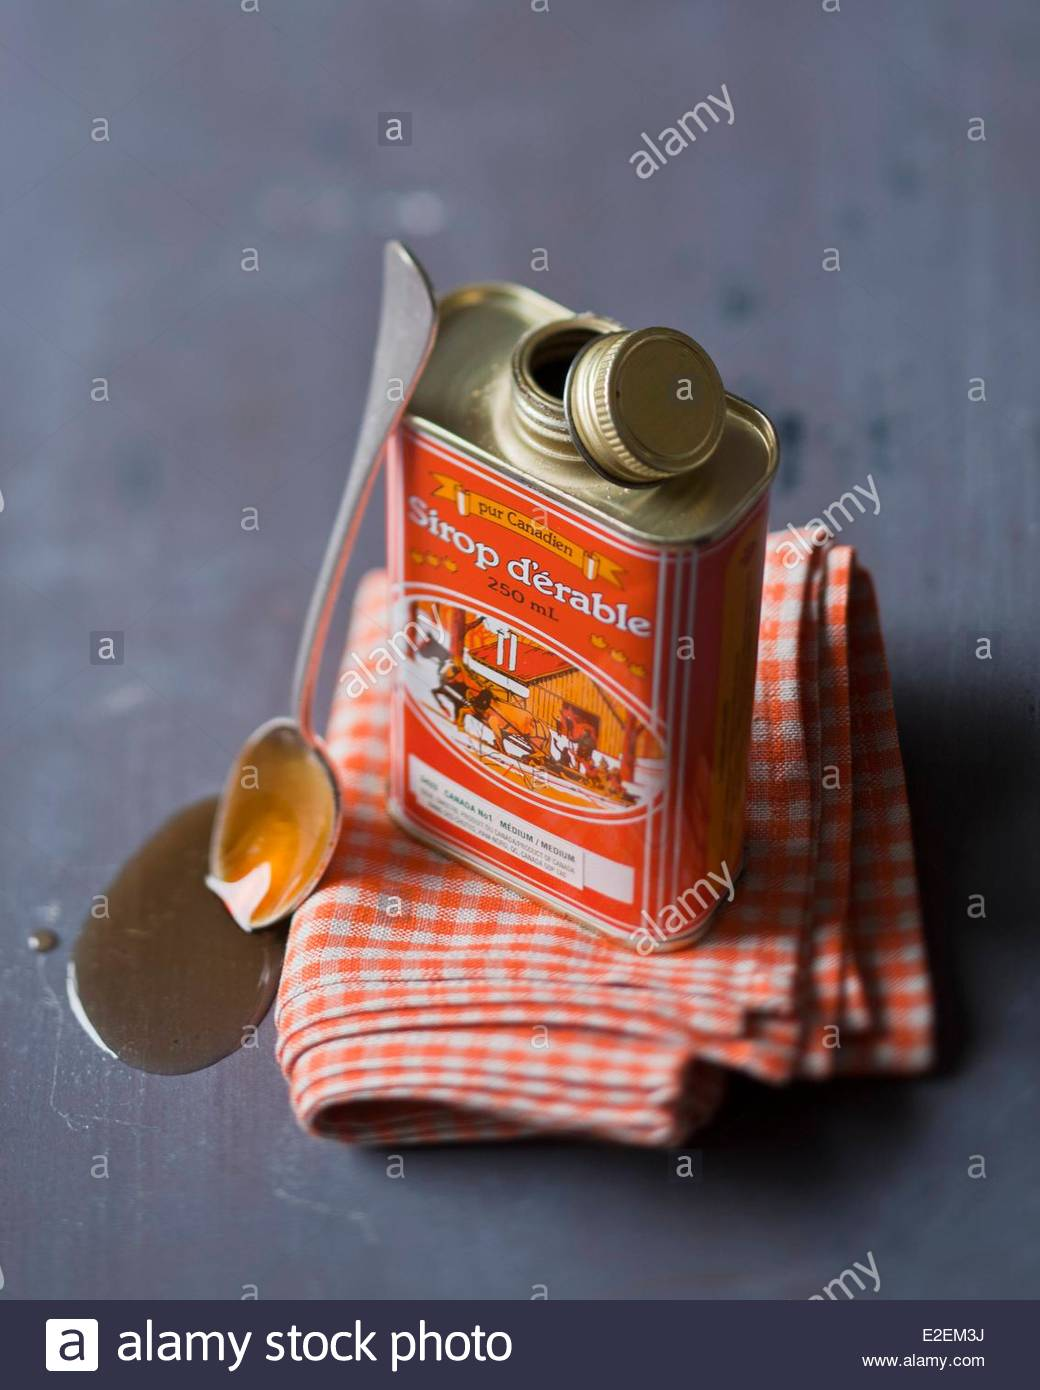 Canada, maple syrup, Styling Valerie Lhomme - Stock Image